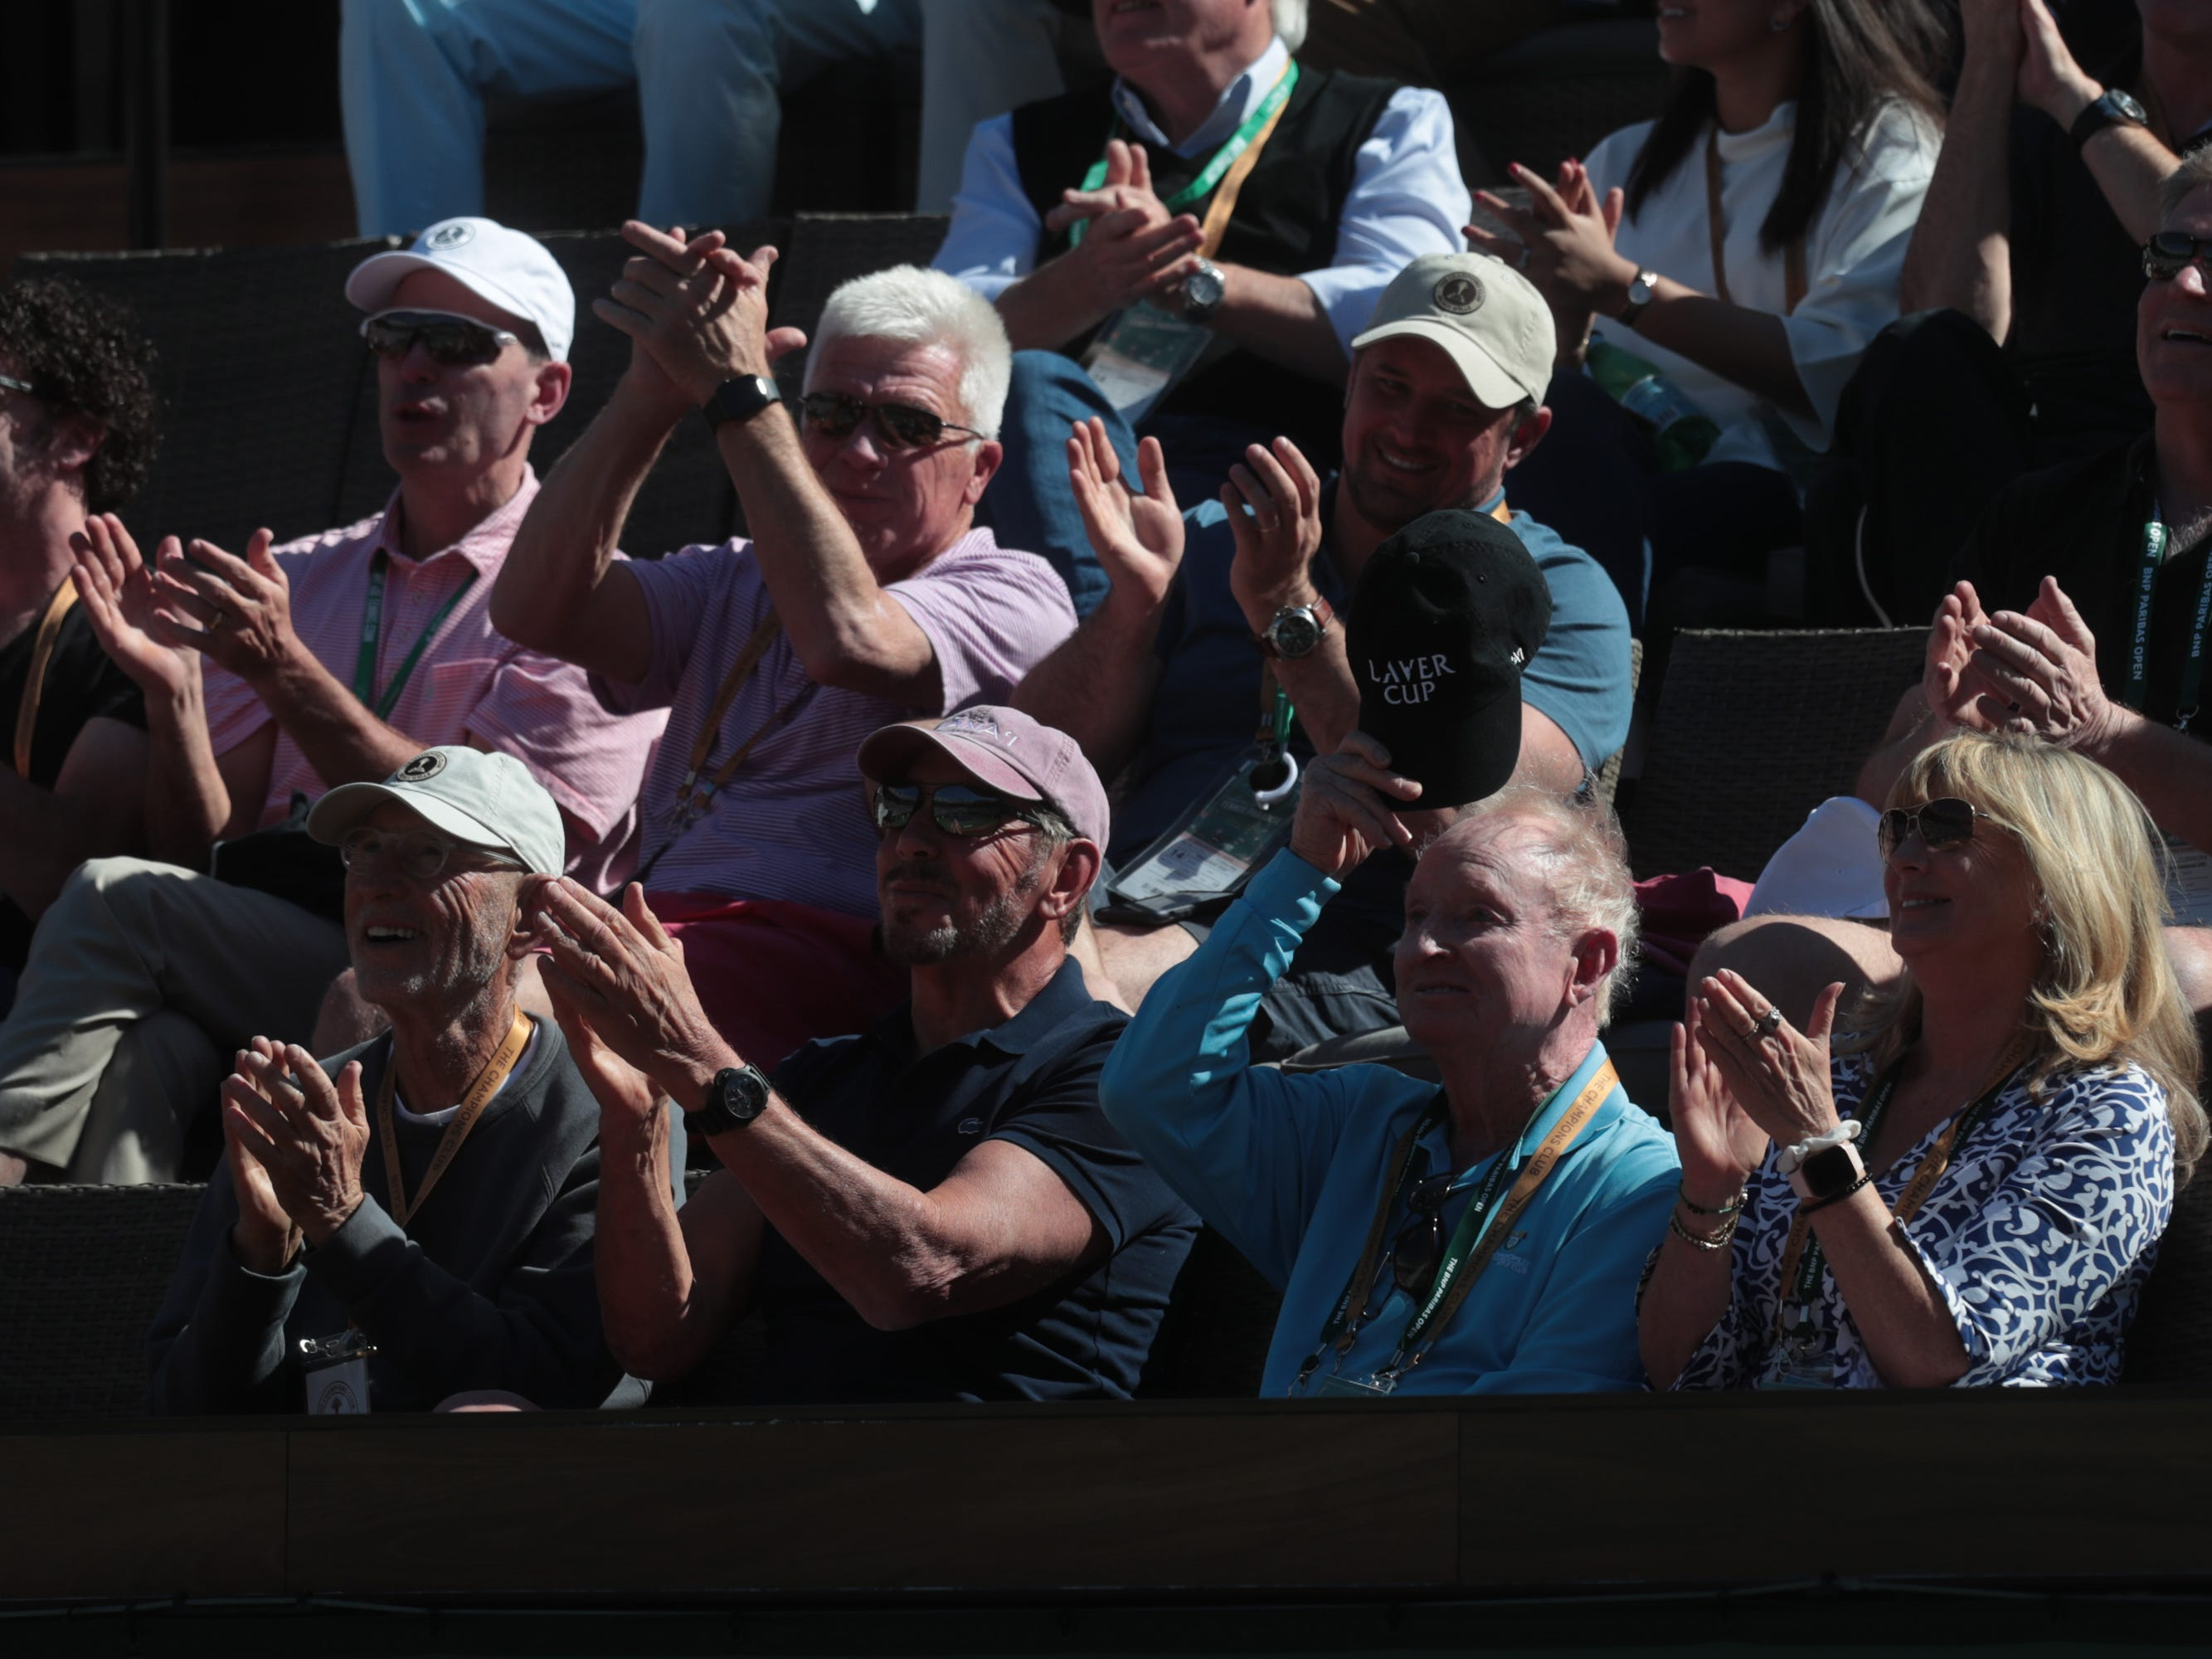 Rod Laver tips his hat to fans at the BNP Paribas Open in Indian Wells, Calif., March 13, 2019.